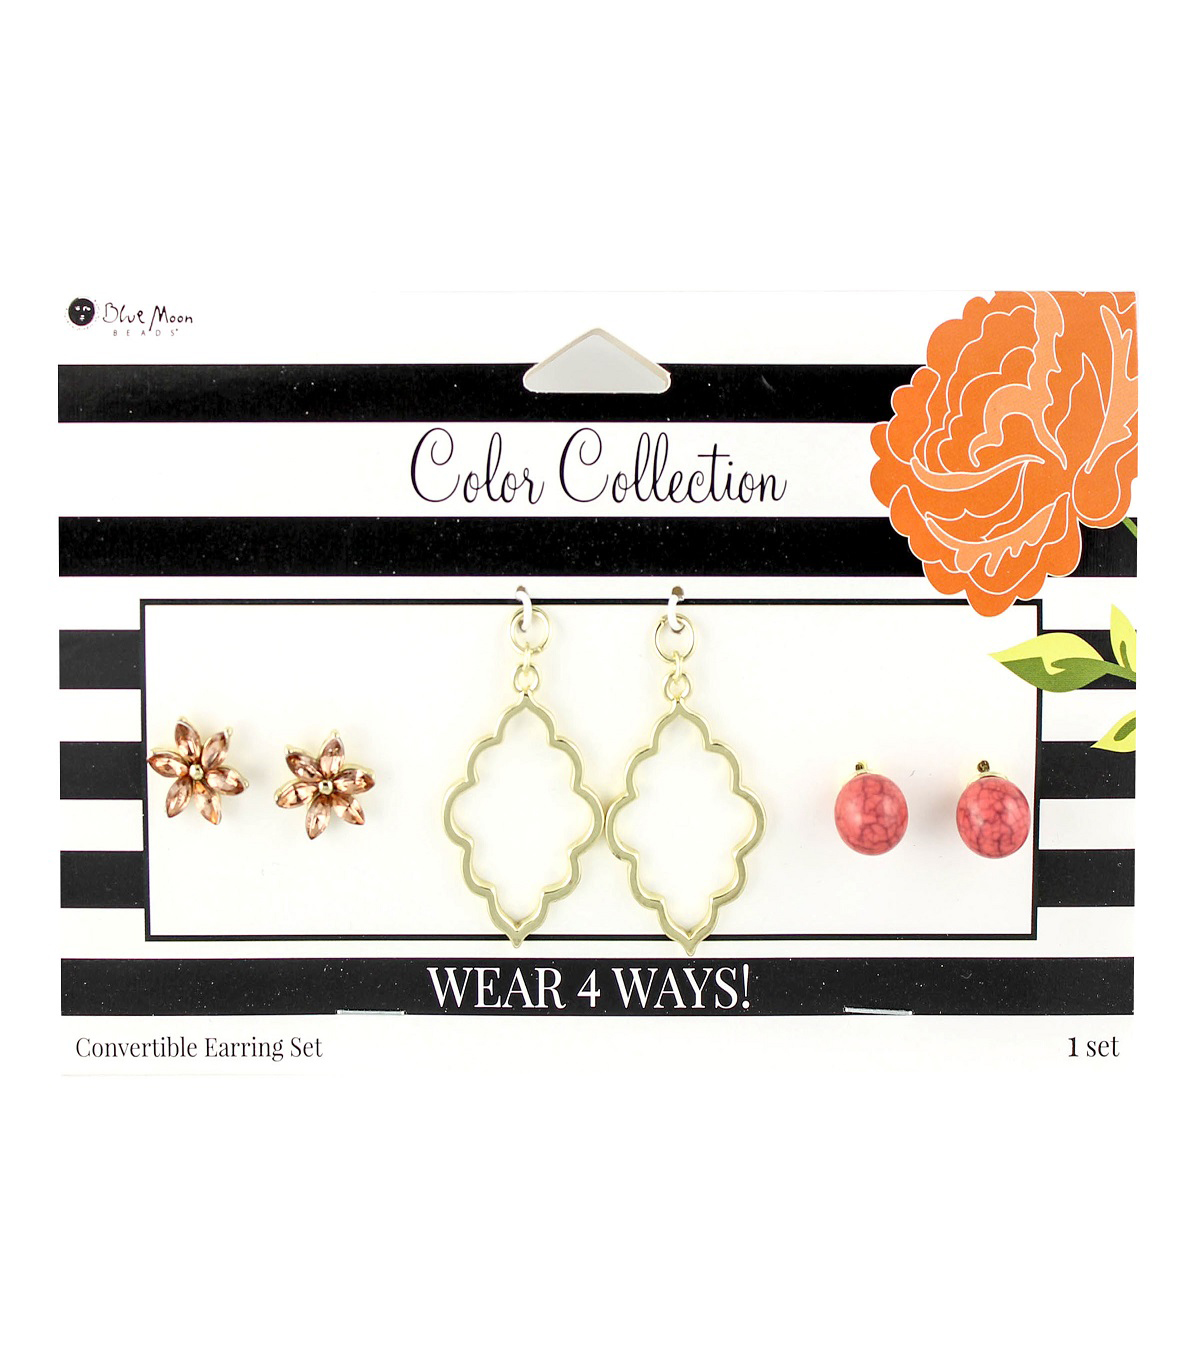 Blue Moon Beads Color Collection Earring Mix & Match Pack-Salmon Gold